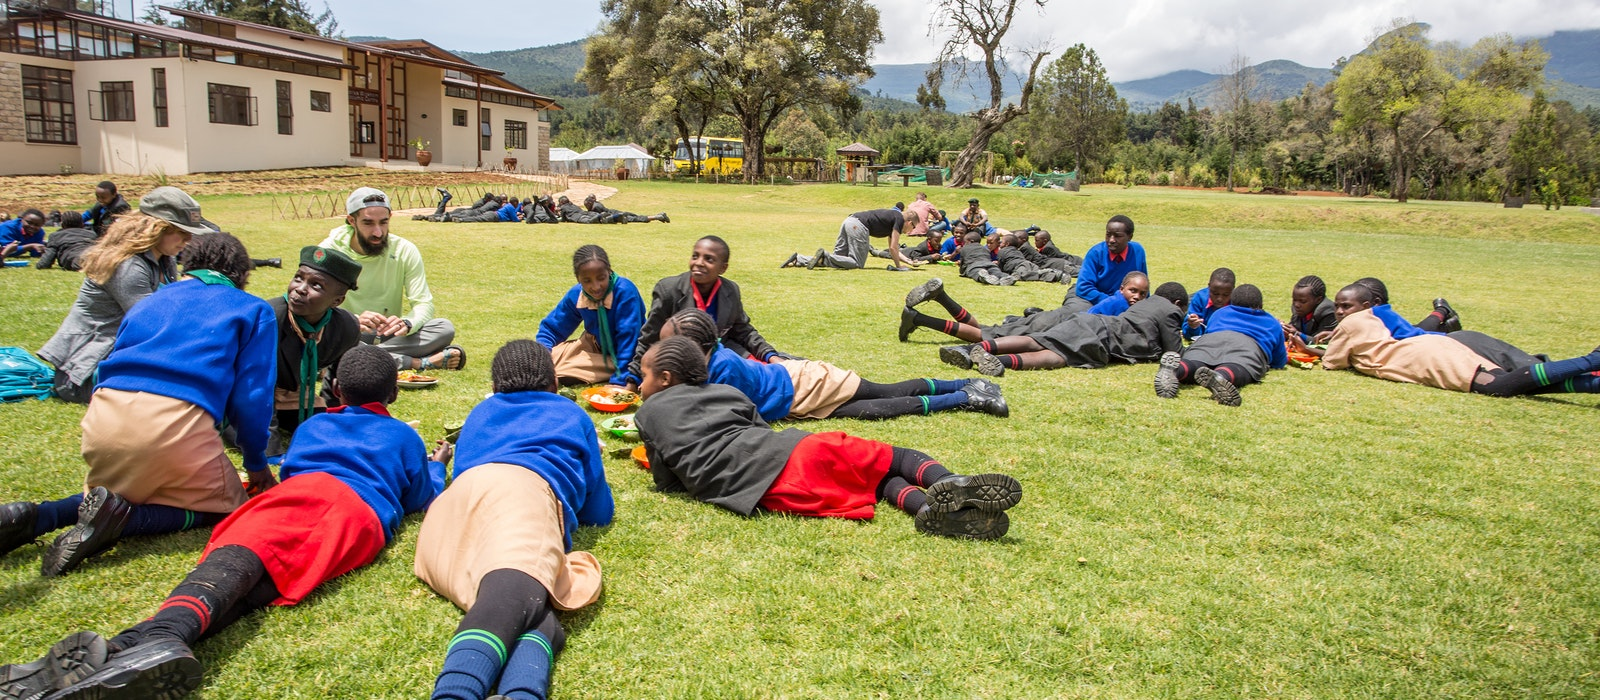 As part of a new voluntourism concept, outdoor retailer MSR is working with the Nairobi-area leadership academy Flying Kites to bring clean water to local schools.